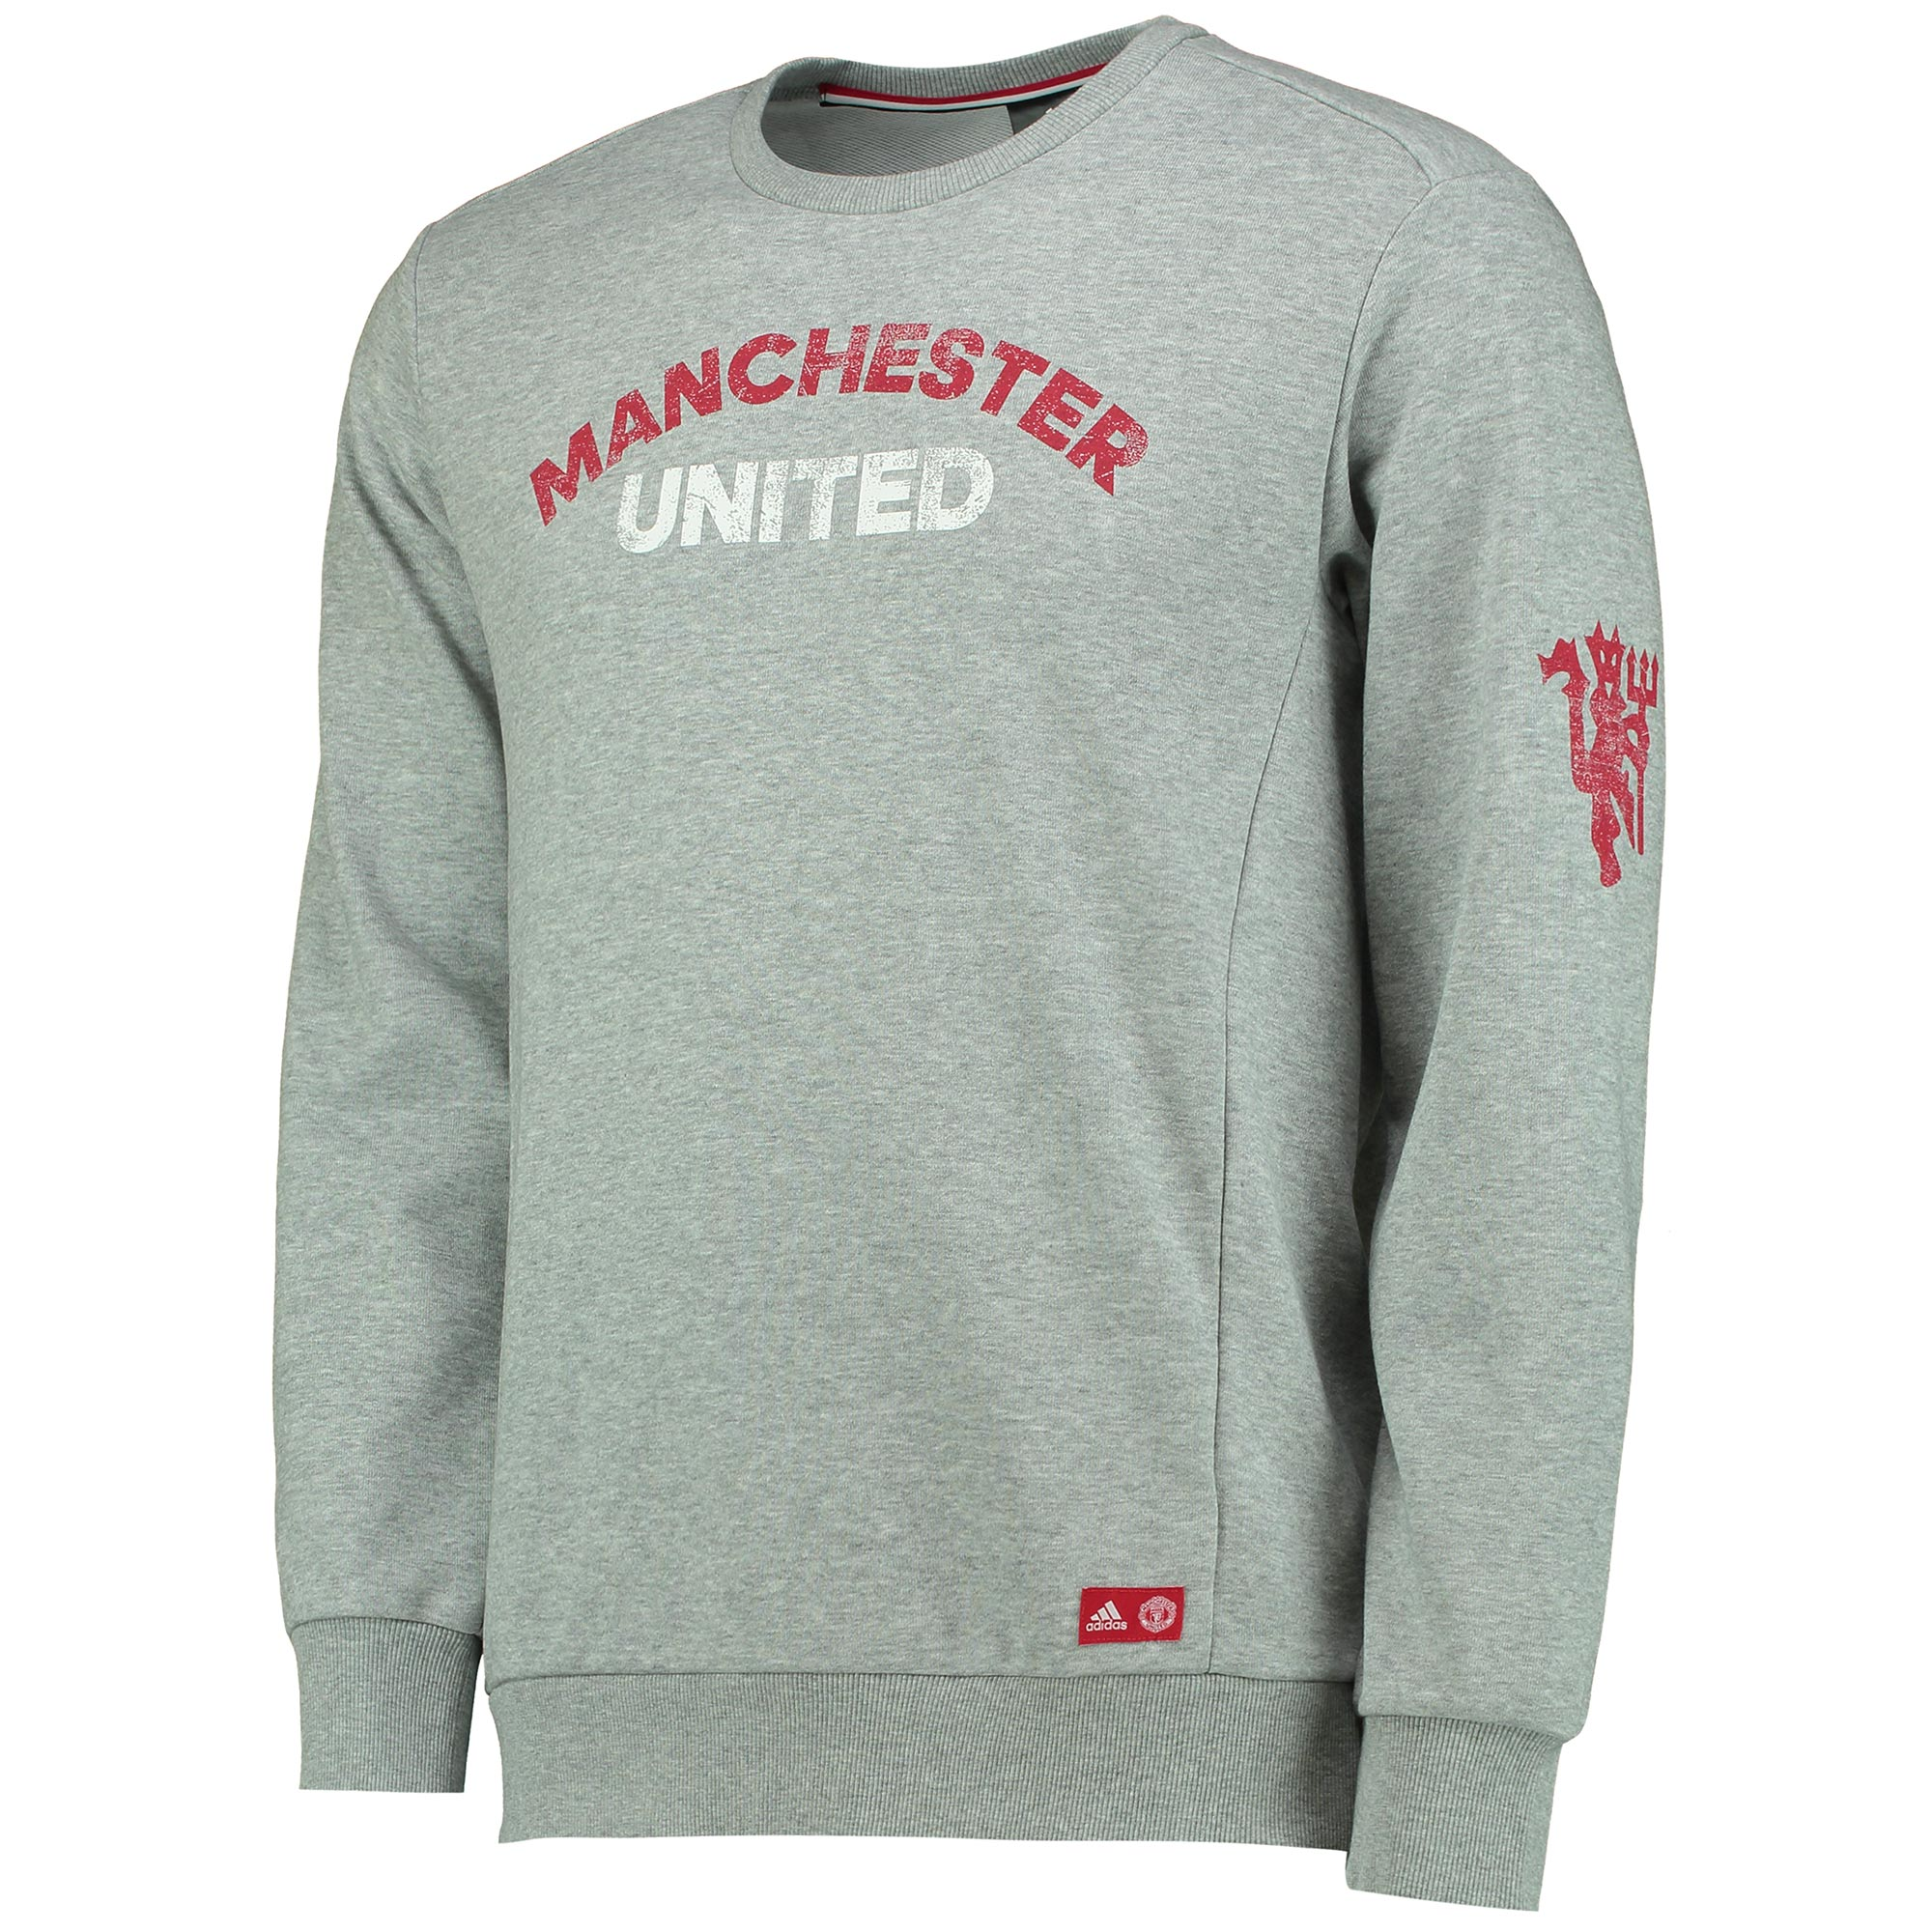 Manchester United Graphic Sweatshirt - Grey